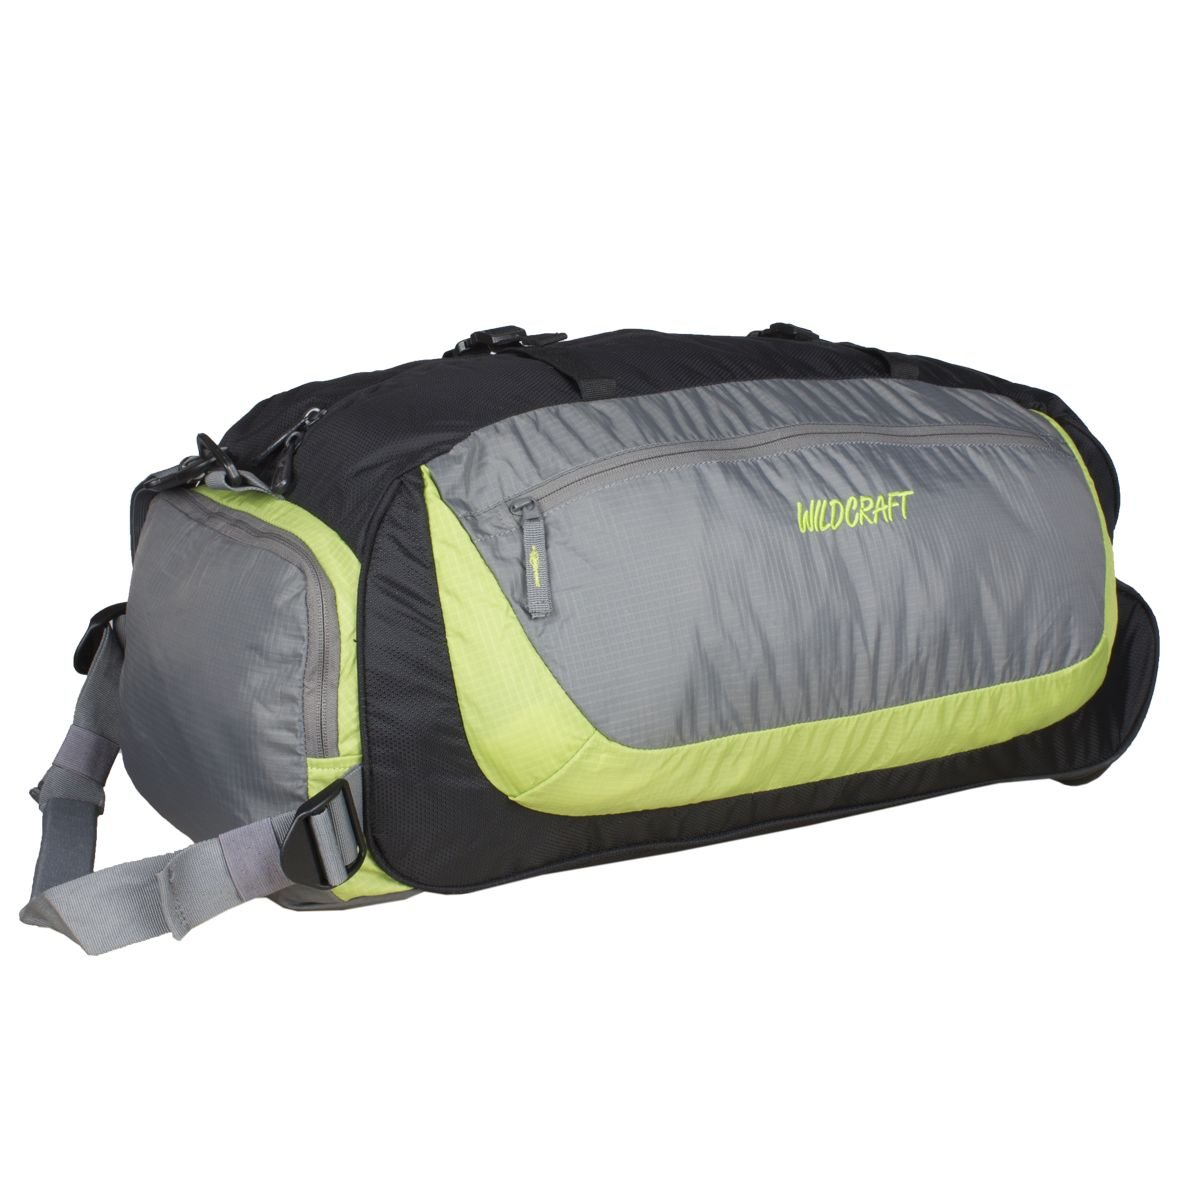 14563ca554 Wildcraft Rover Nylon 58.4 cms Green Softsided Travel Duffle  (8903338010678)  Amazon.in  Bags